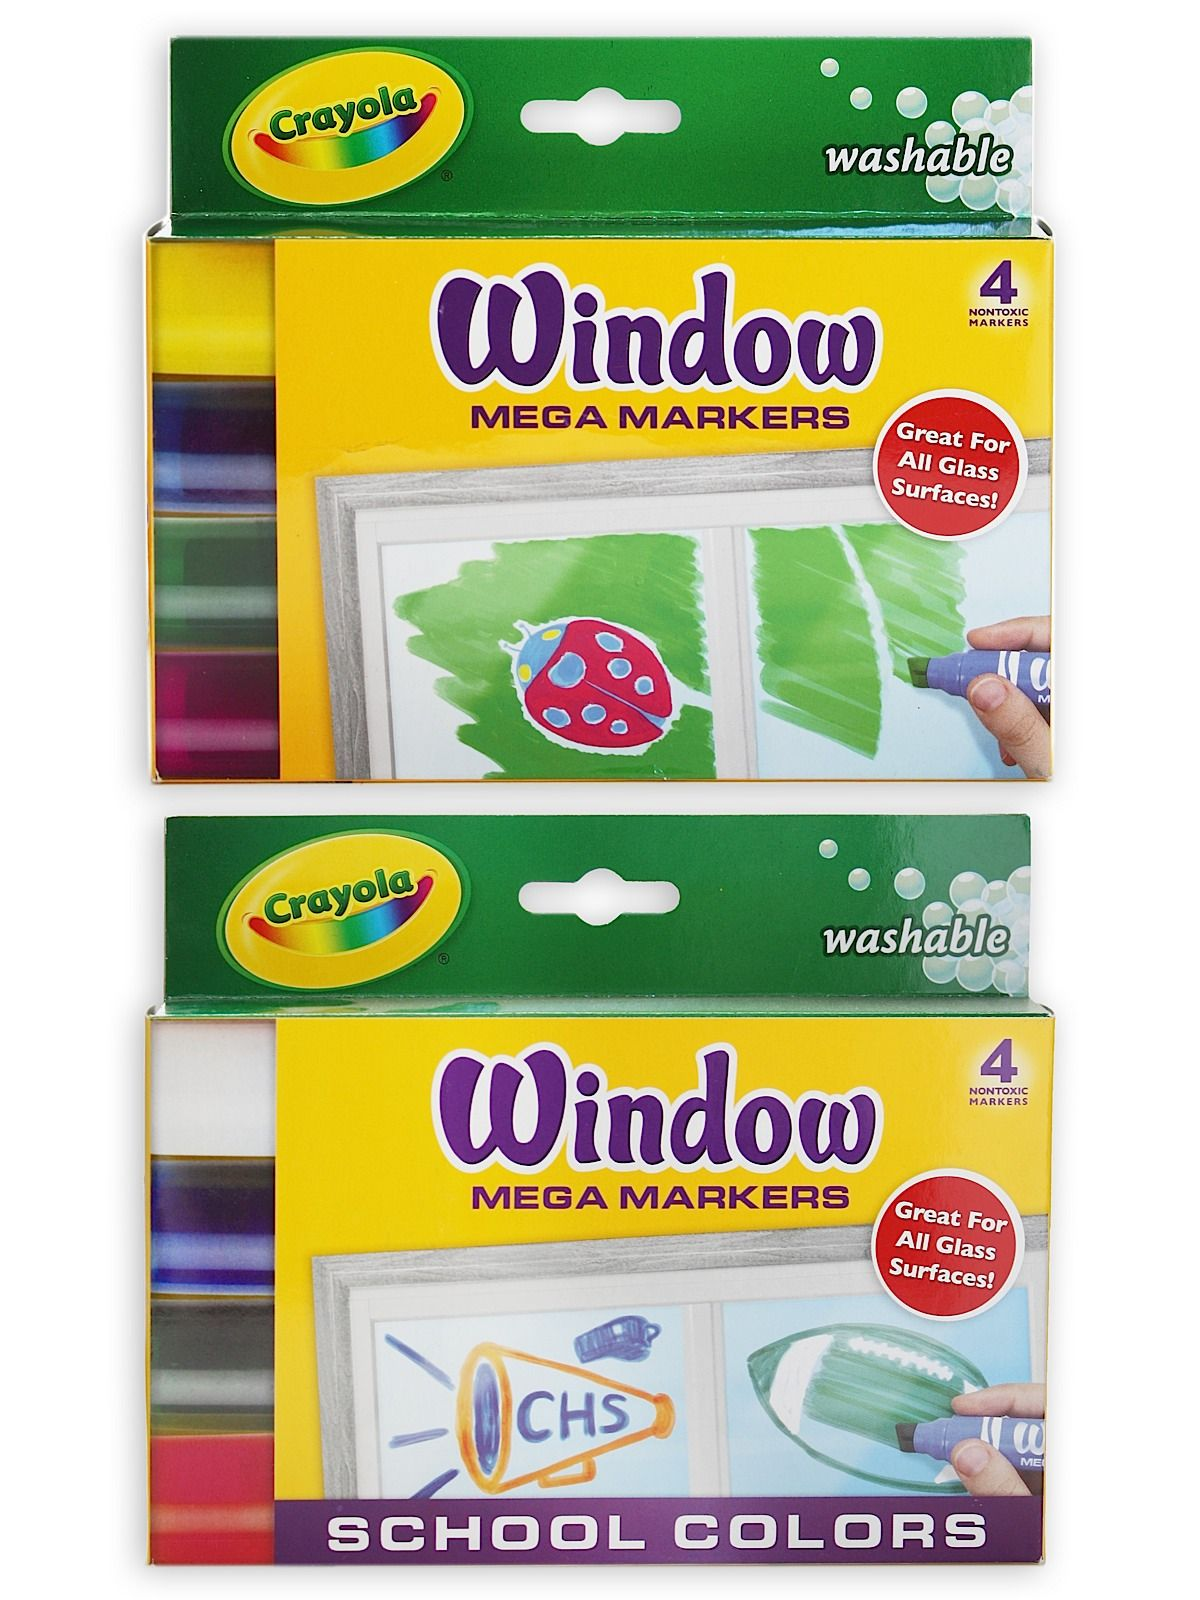 Glass Art Supplies These Window Markers By Crayola Are Designed Specifically For Glass And They Wash Of With Ease As Well